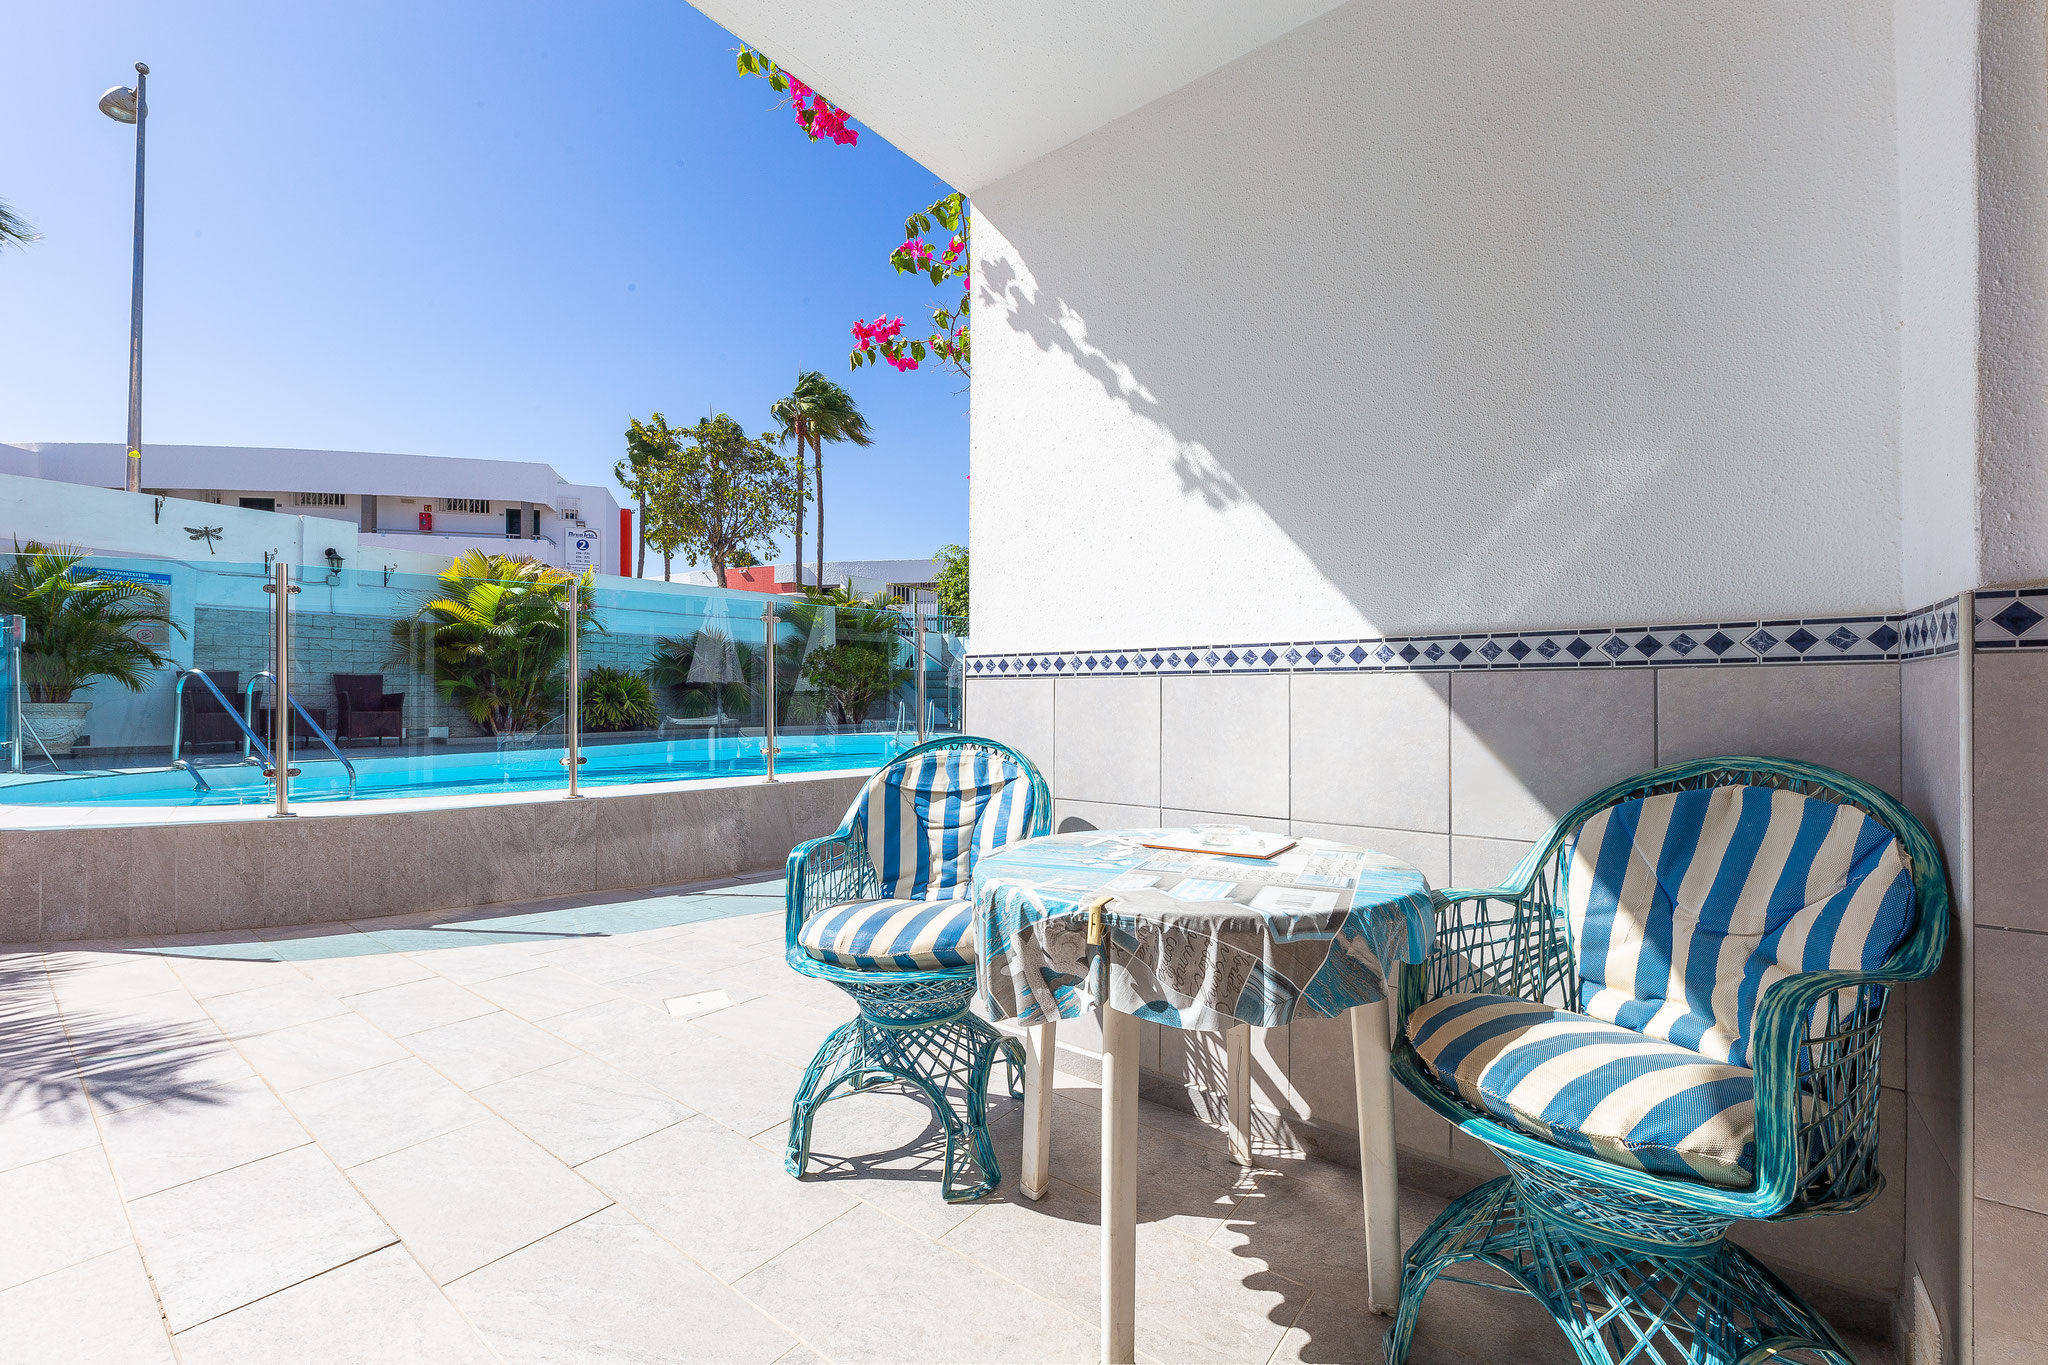 Surf & Sleep Playa del Inglés - from 310 € per person